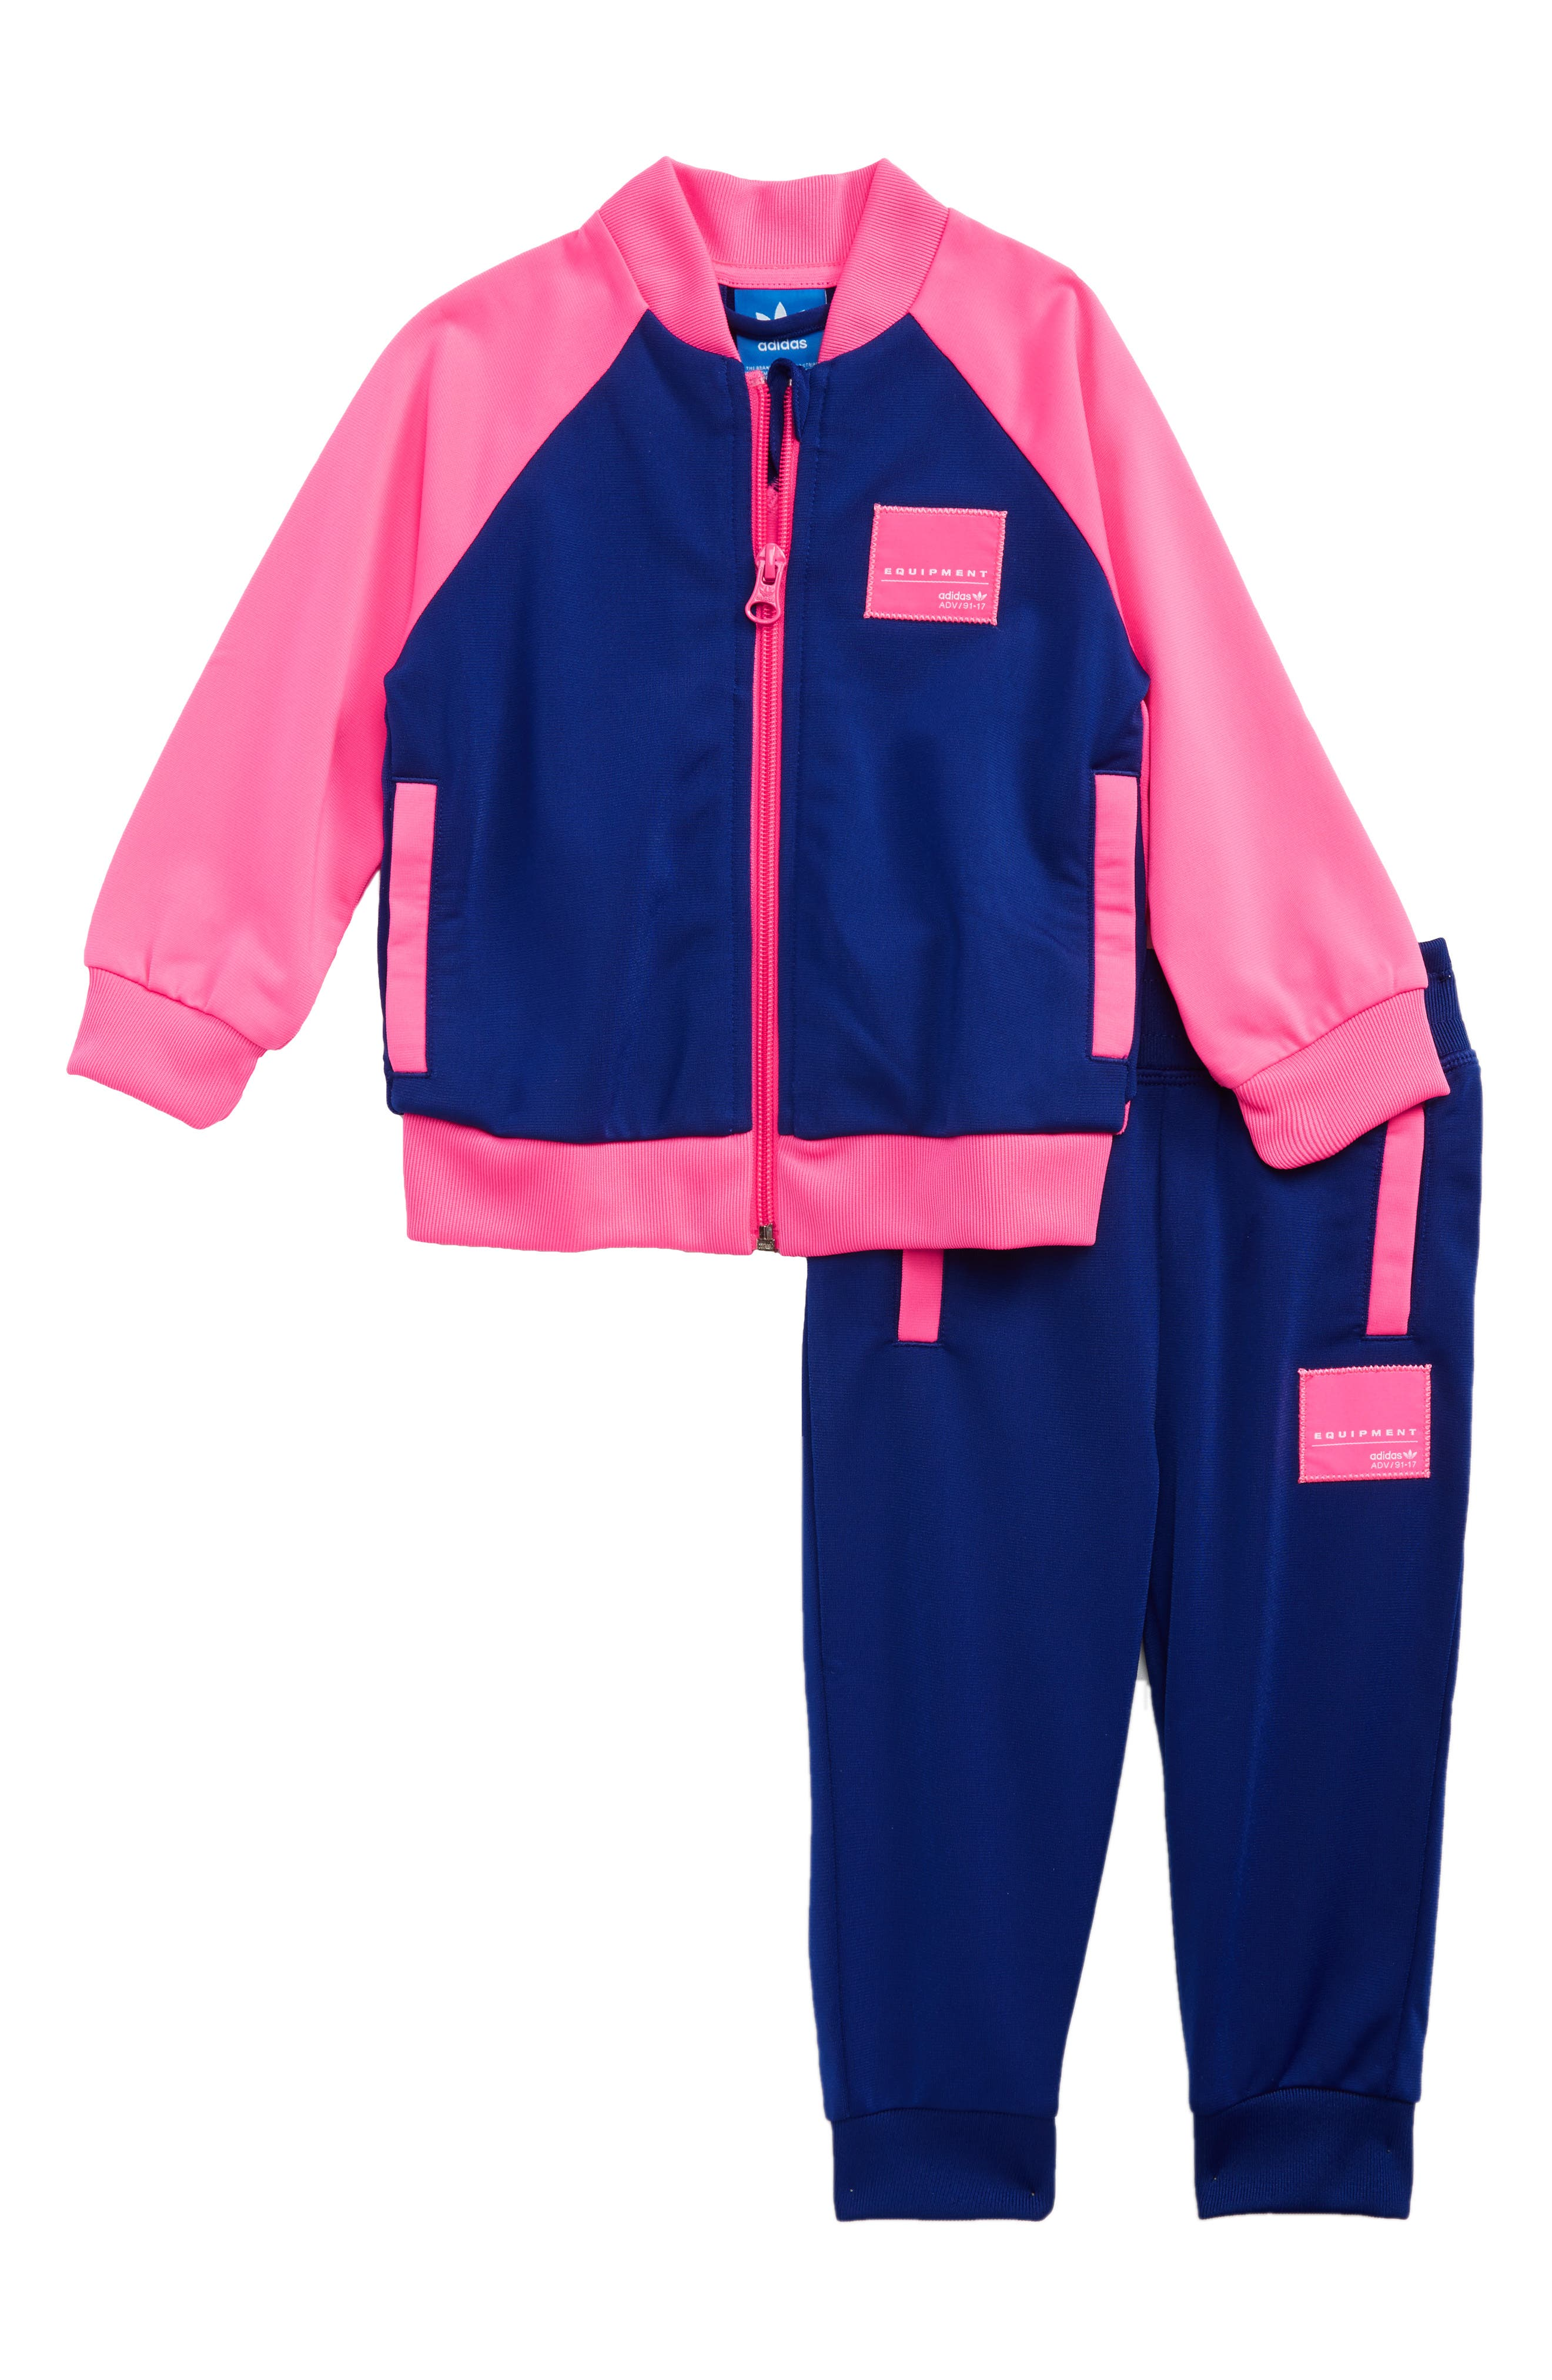 Alternate Image 1 Selected - adidas Originals EQT Track Jacket & Pants (Baby Girls)